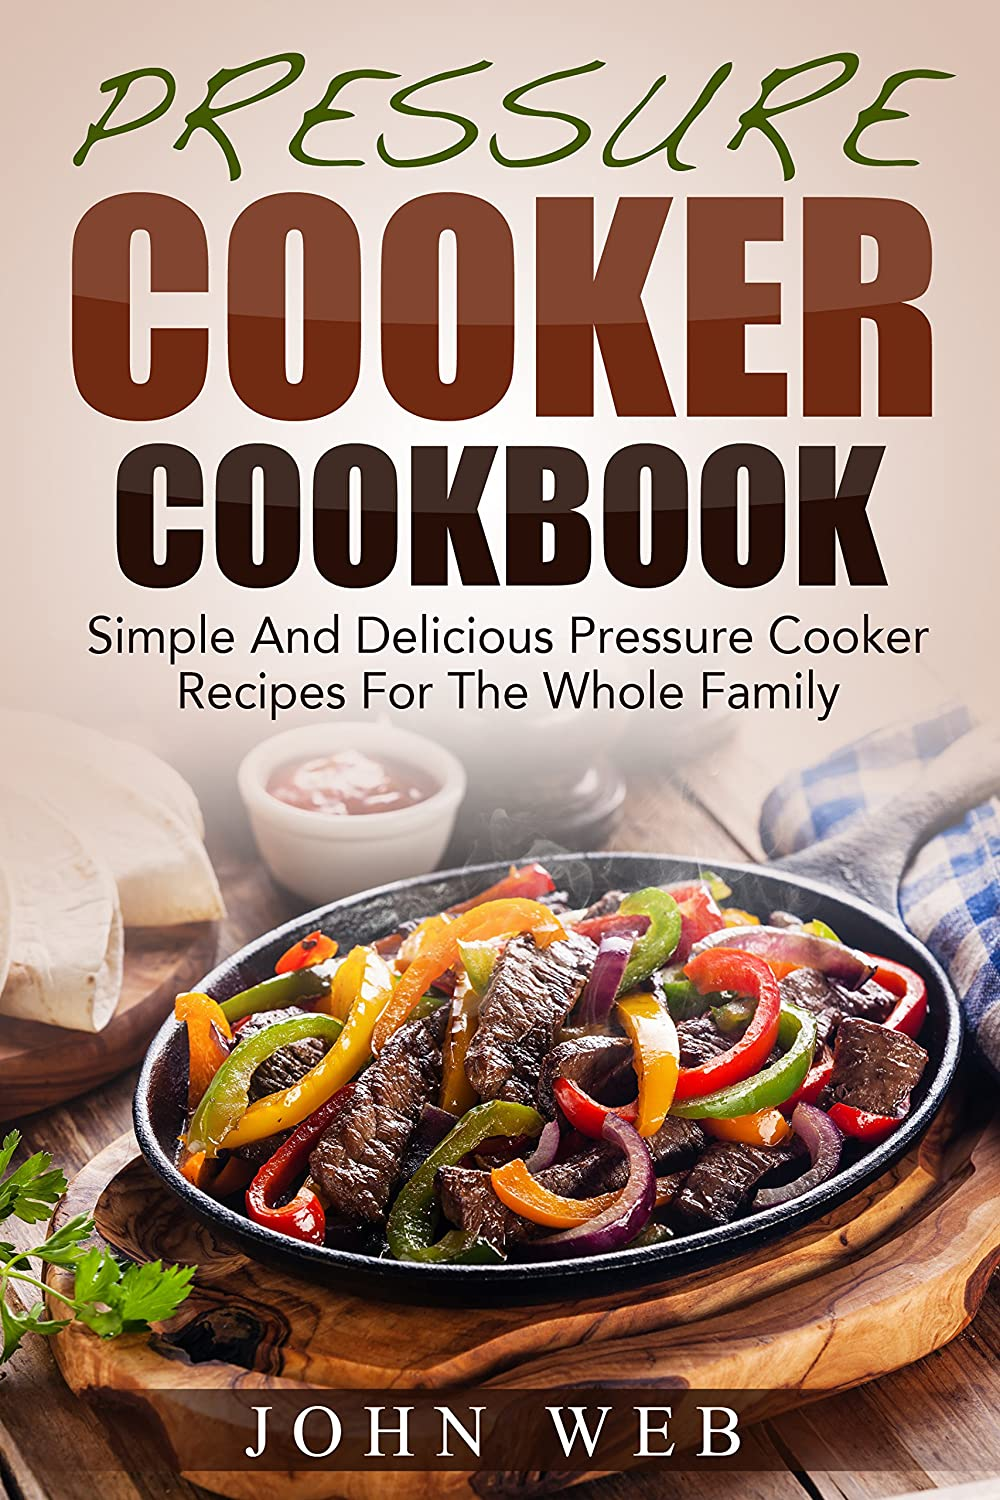 http://www.amazon.com/Pressure-Cooker-Cookbook-Delicious-Recipes-ebook/dp/B00QO9I7GA